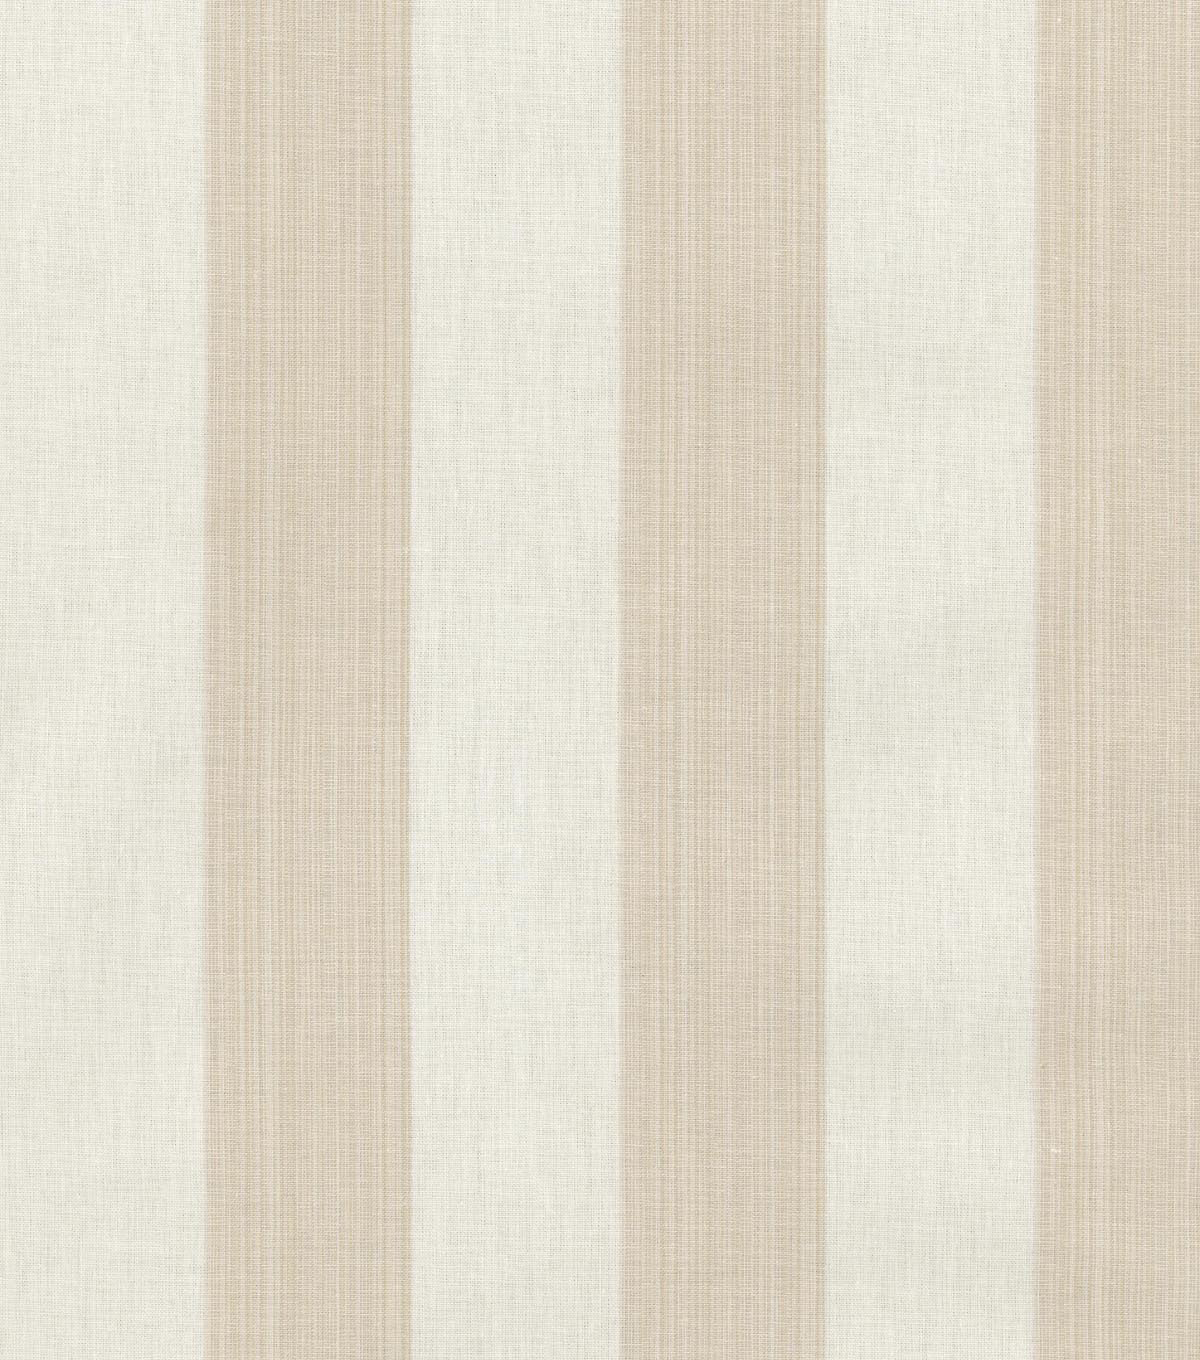 Home Decor 8\u0022x8\u0022 Swatch Fabric-Williamsburg Stratford Stripe Zlinen